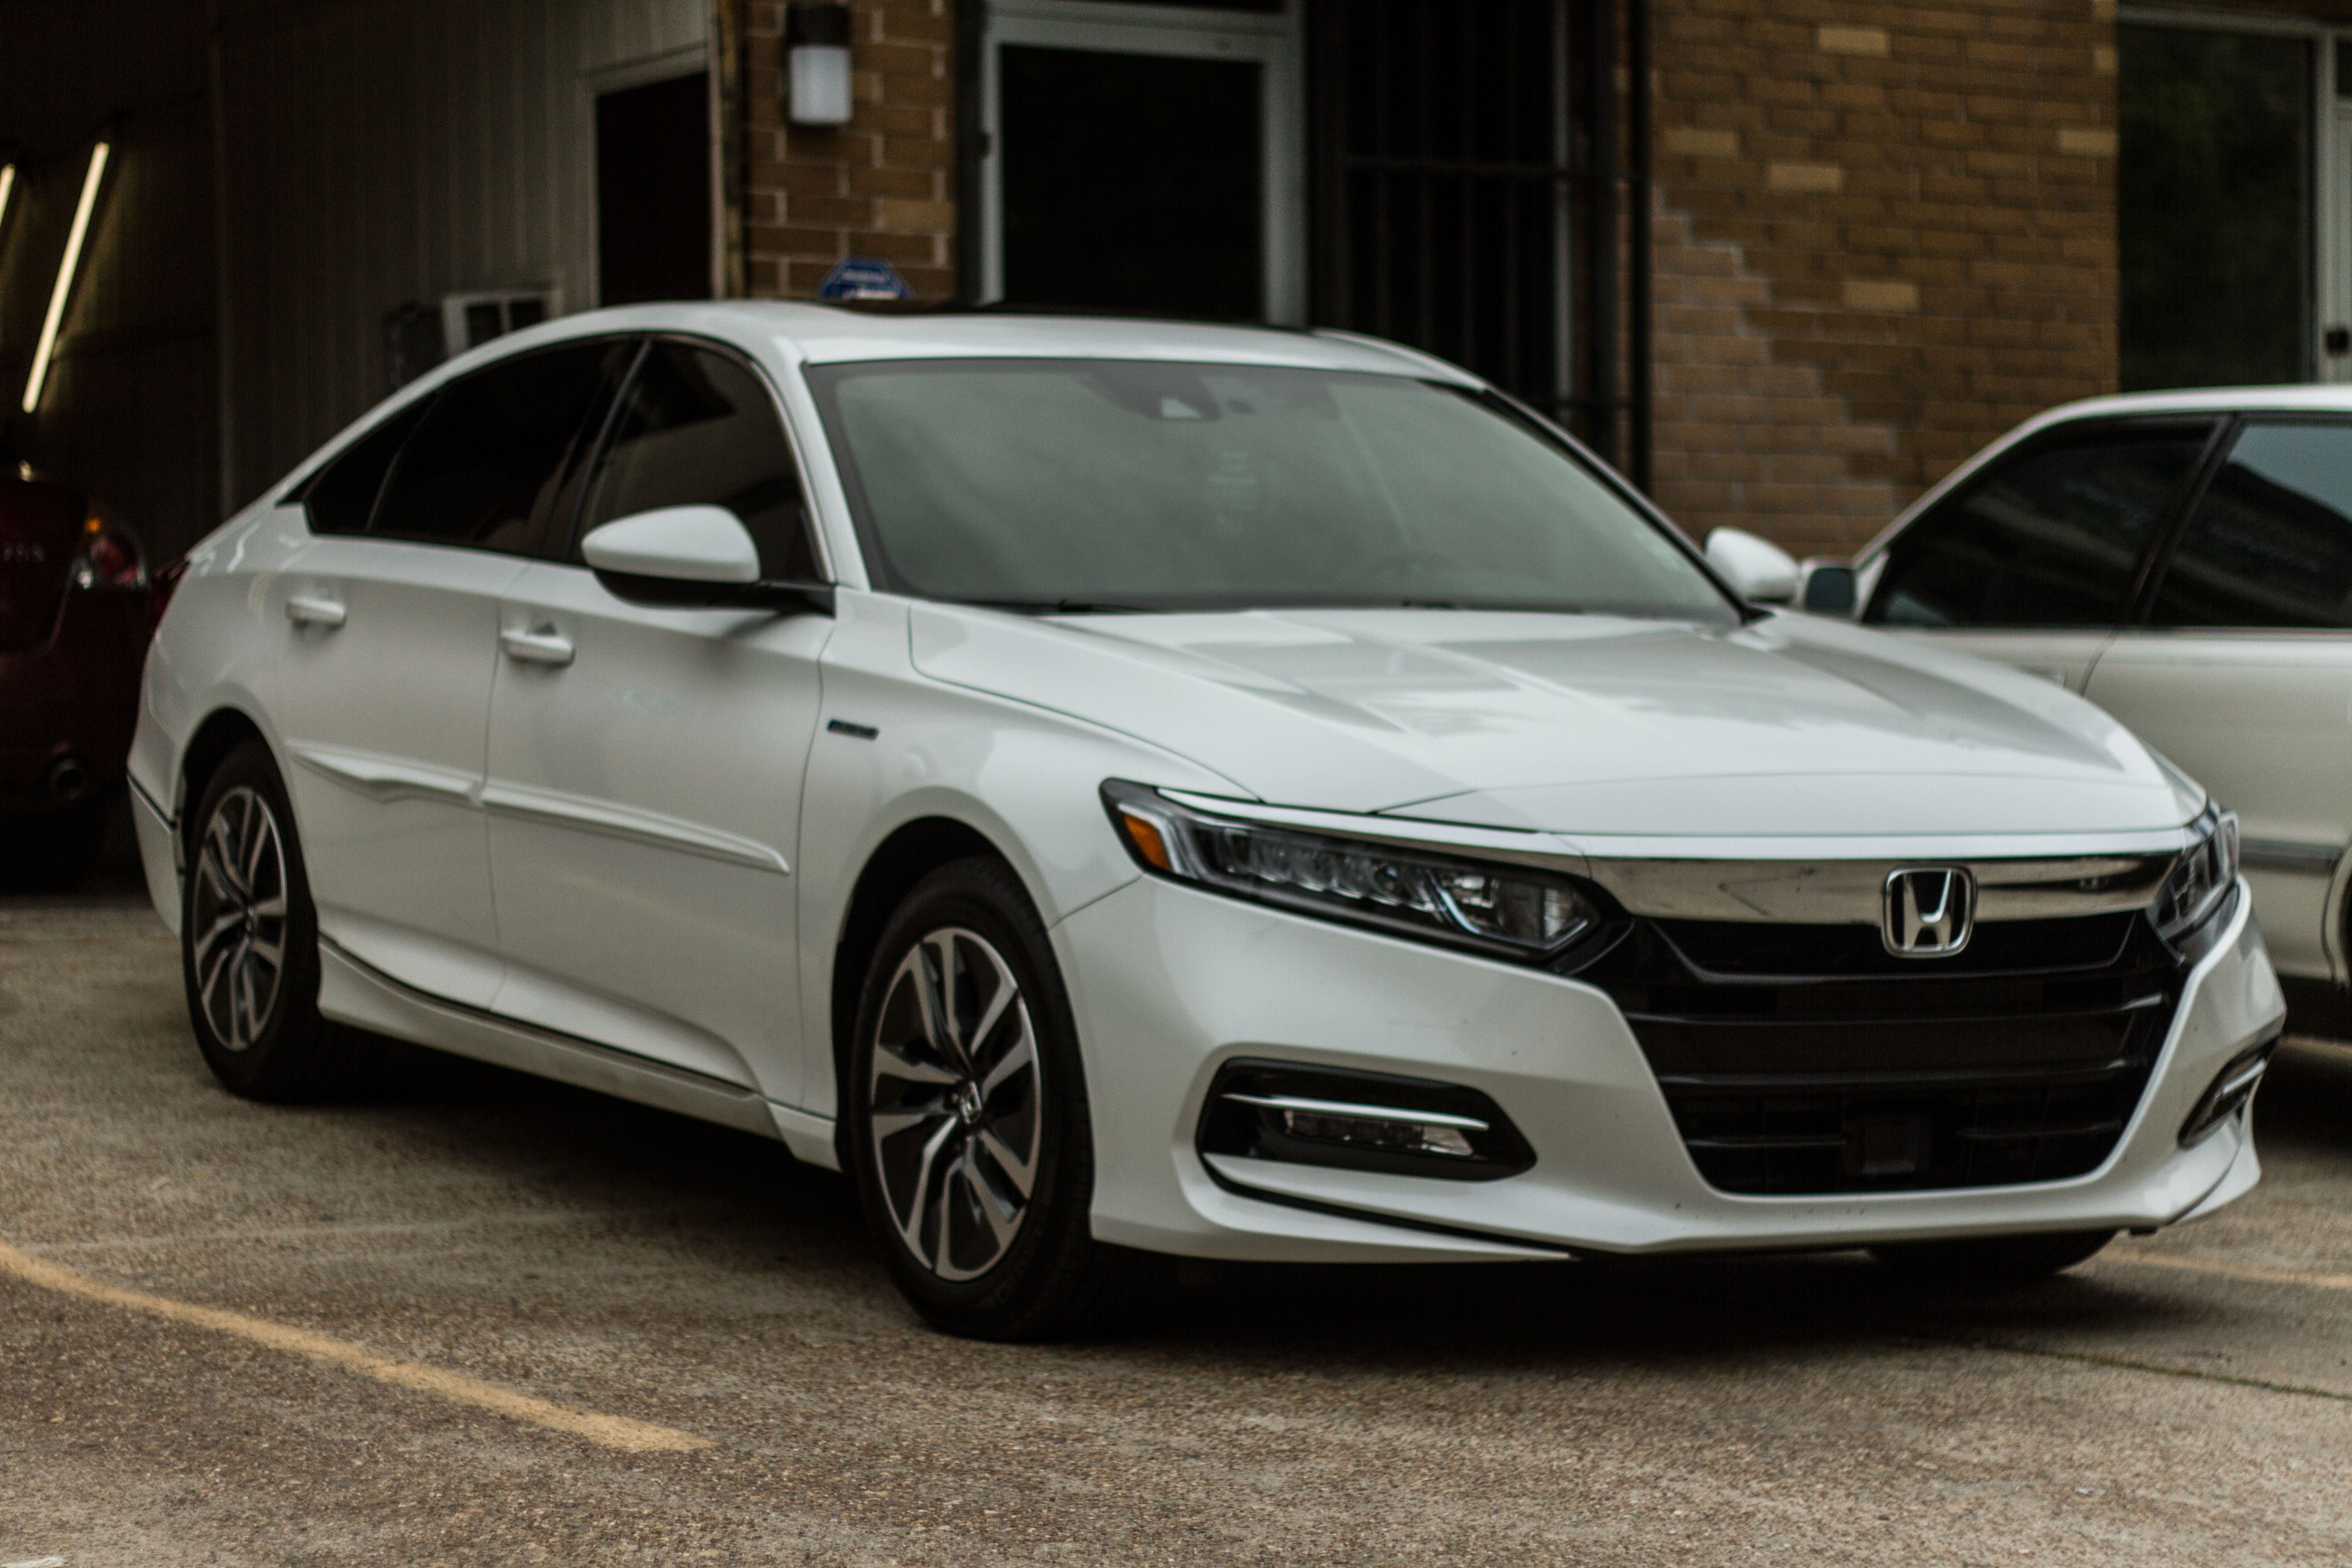 small resolution of 2018 honda accord tinted with ceramic on all sides back windshield sunroof ceramic tint is the most effective tint in heat reduction and will preserve